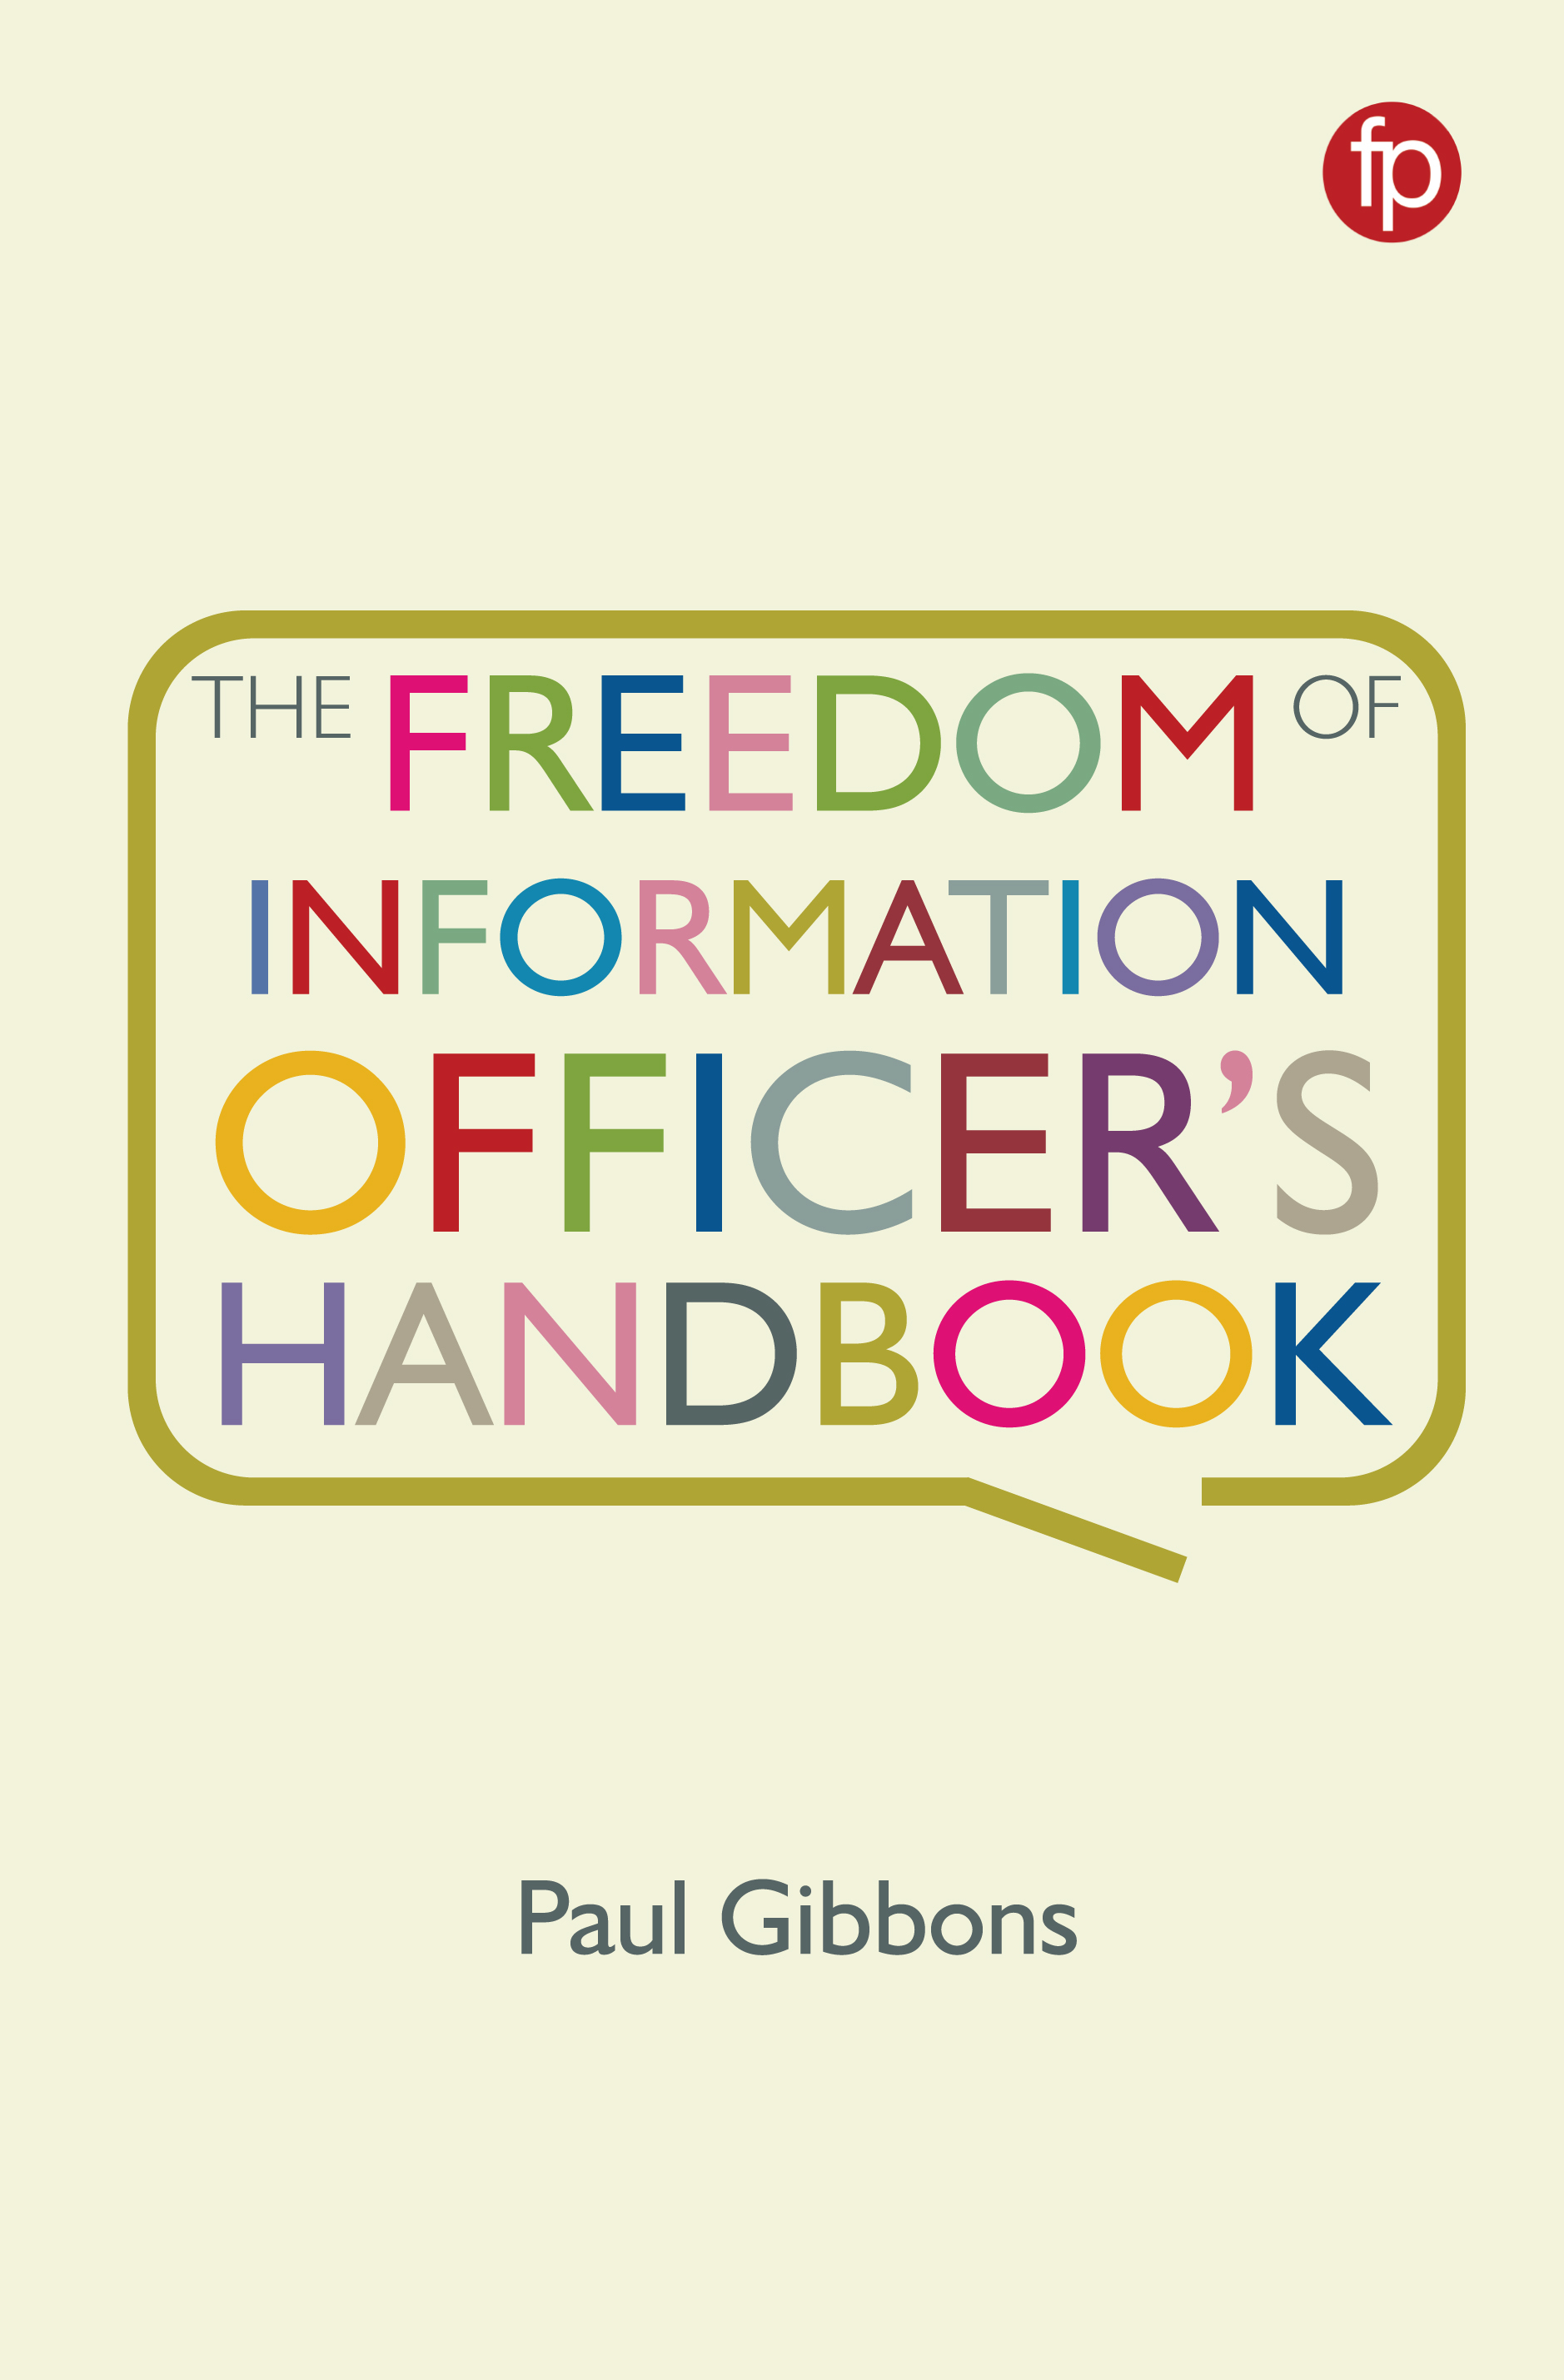 The Freedom of Information Officer's Handbook